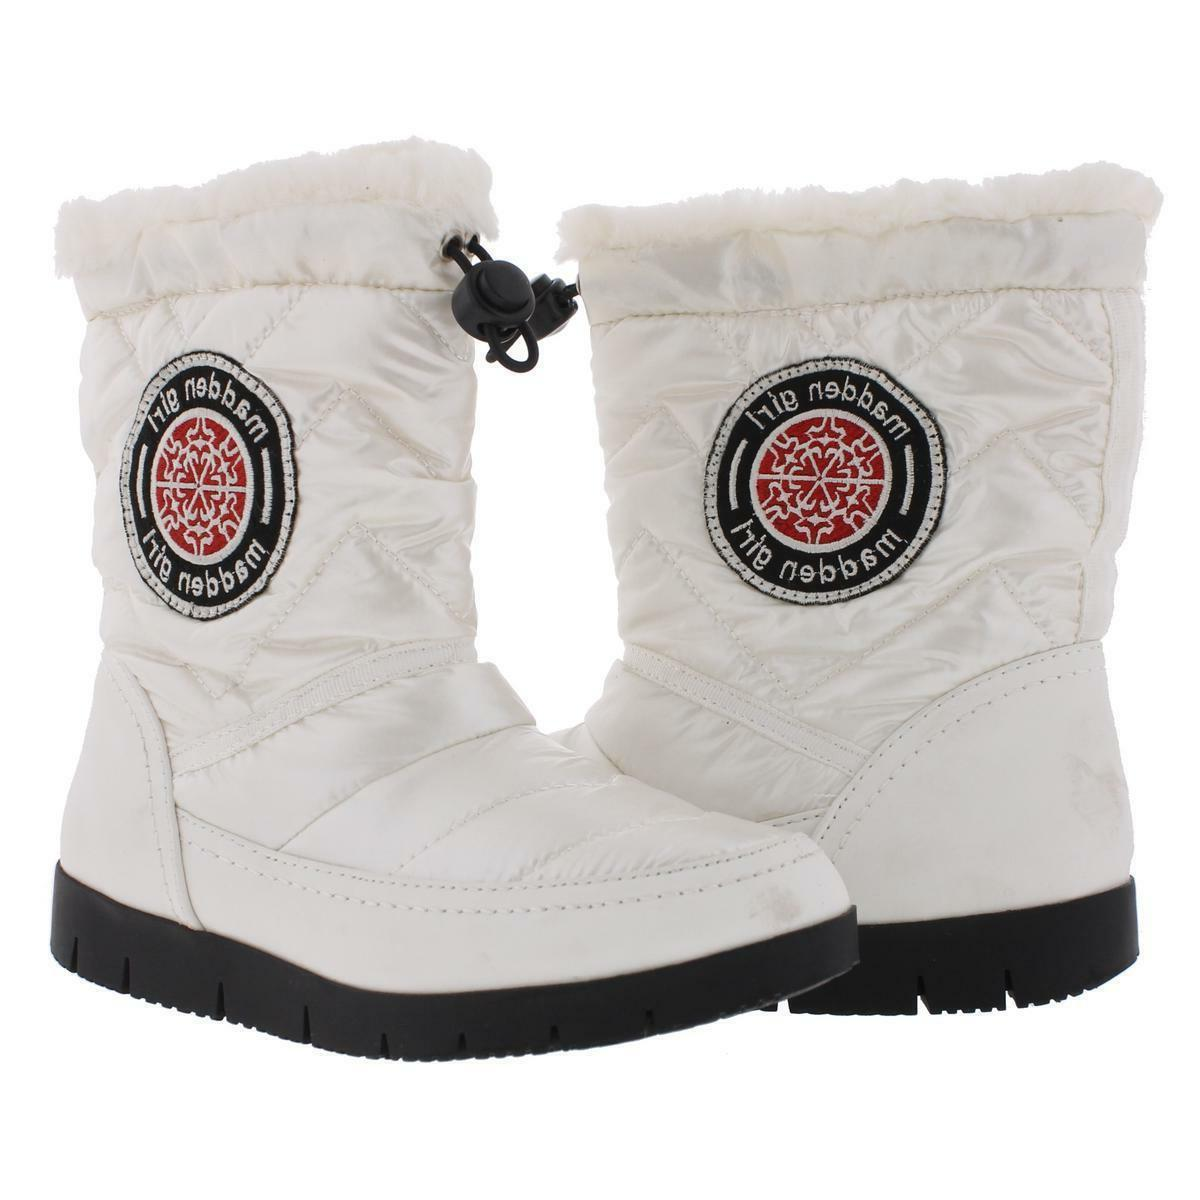 MADDEN GIRL ICICLE WHITE QUILTED WINTER BOOTS WOMENS SHOES S